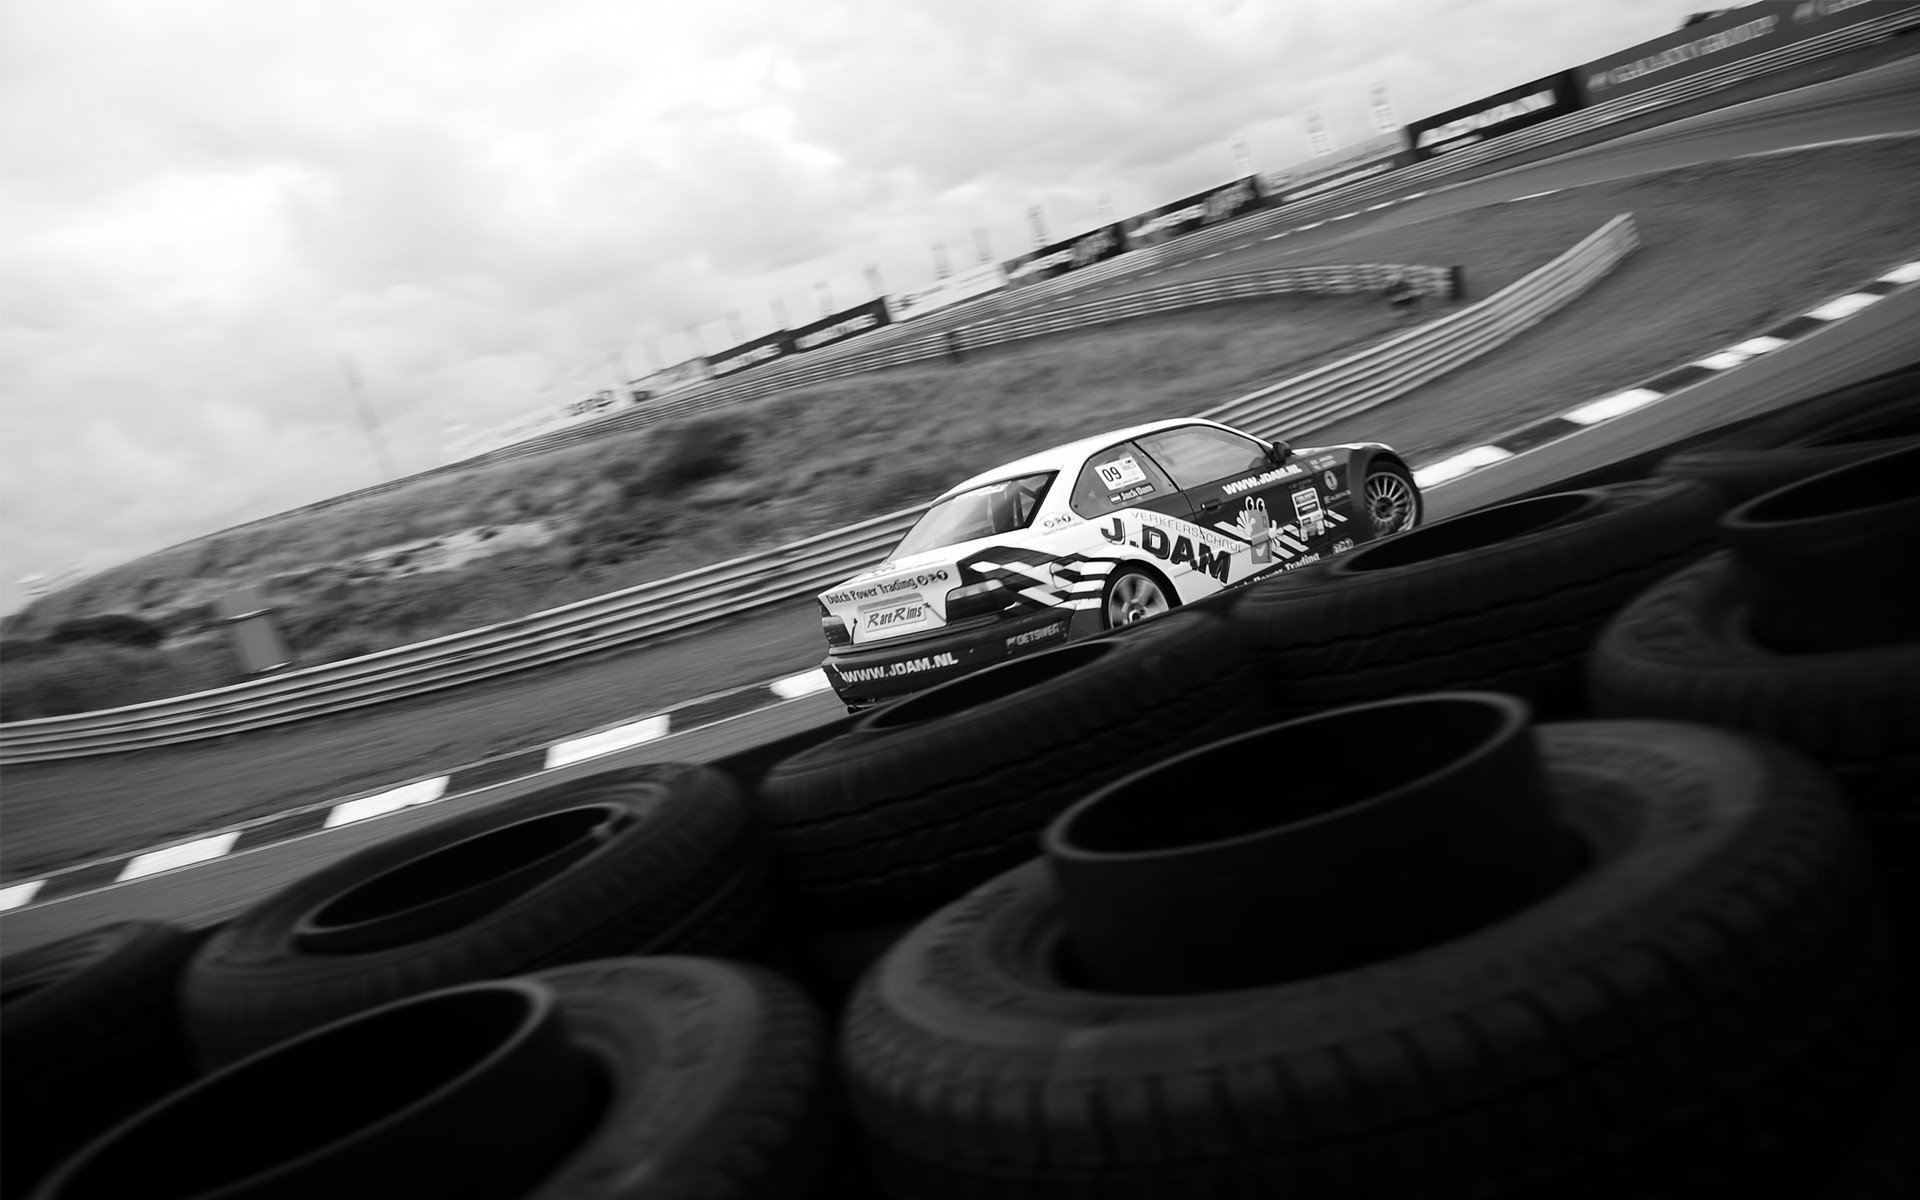 cars monochrome car tires greyscale race tracks